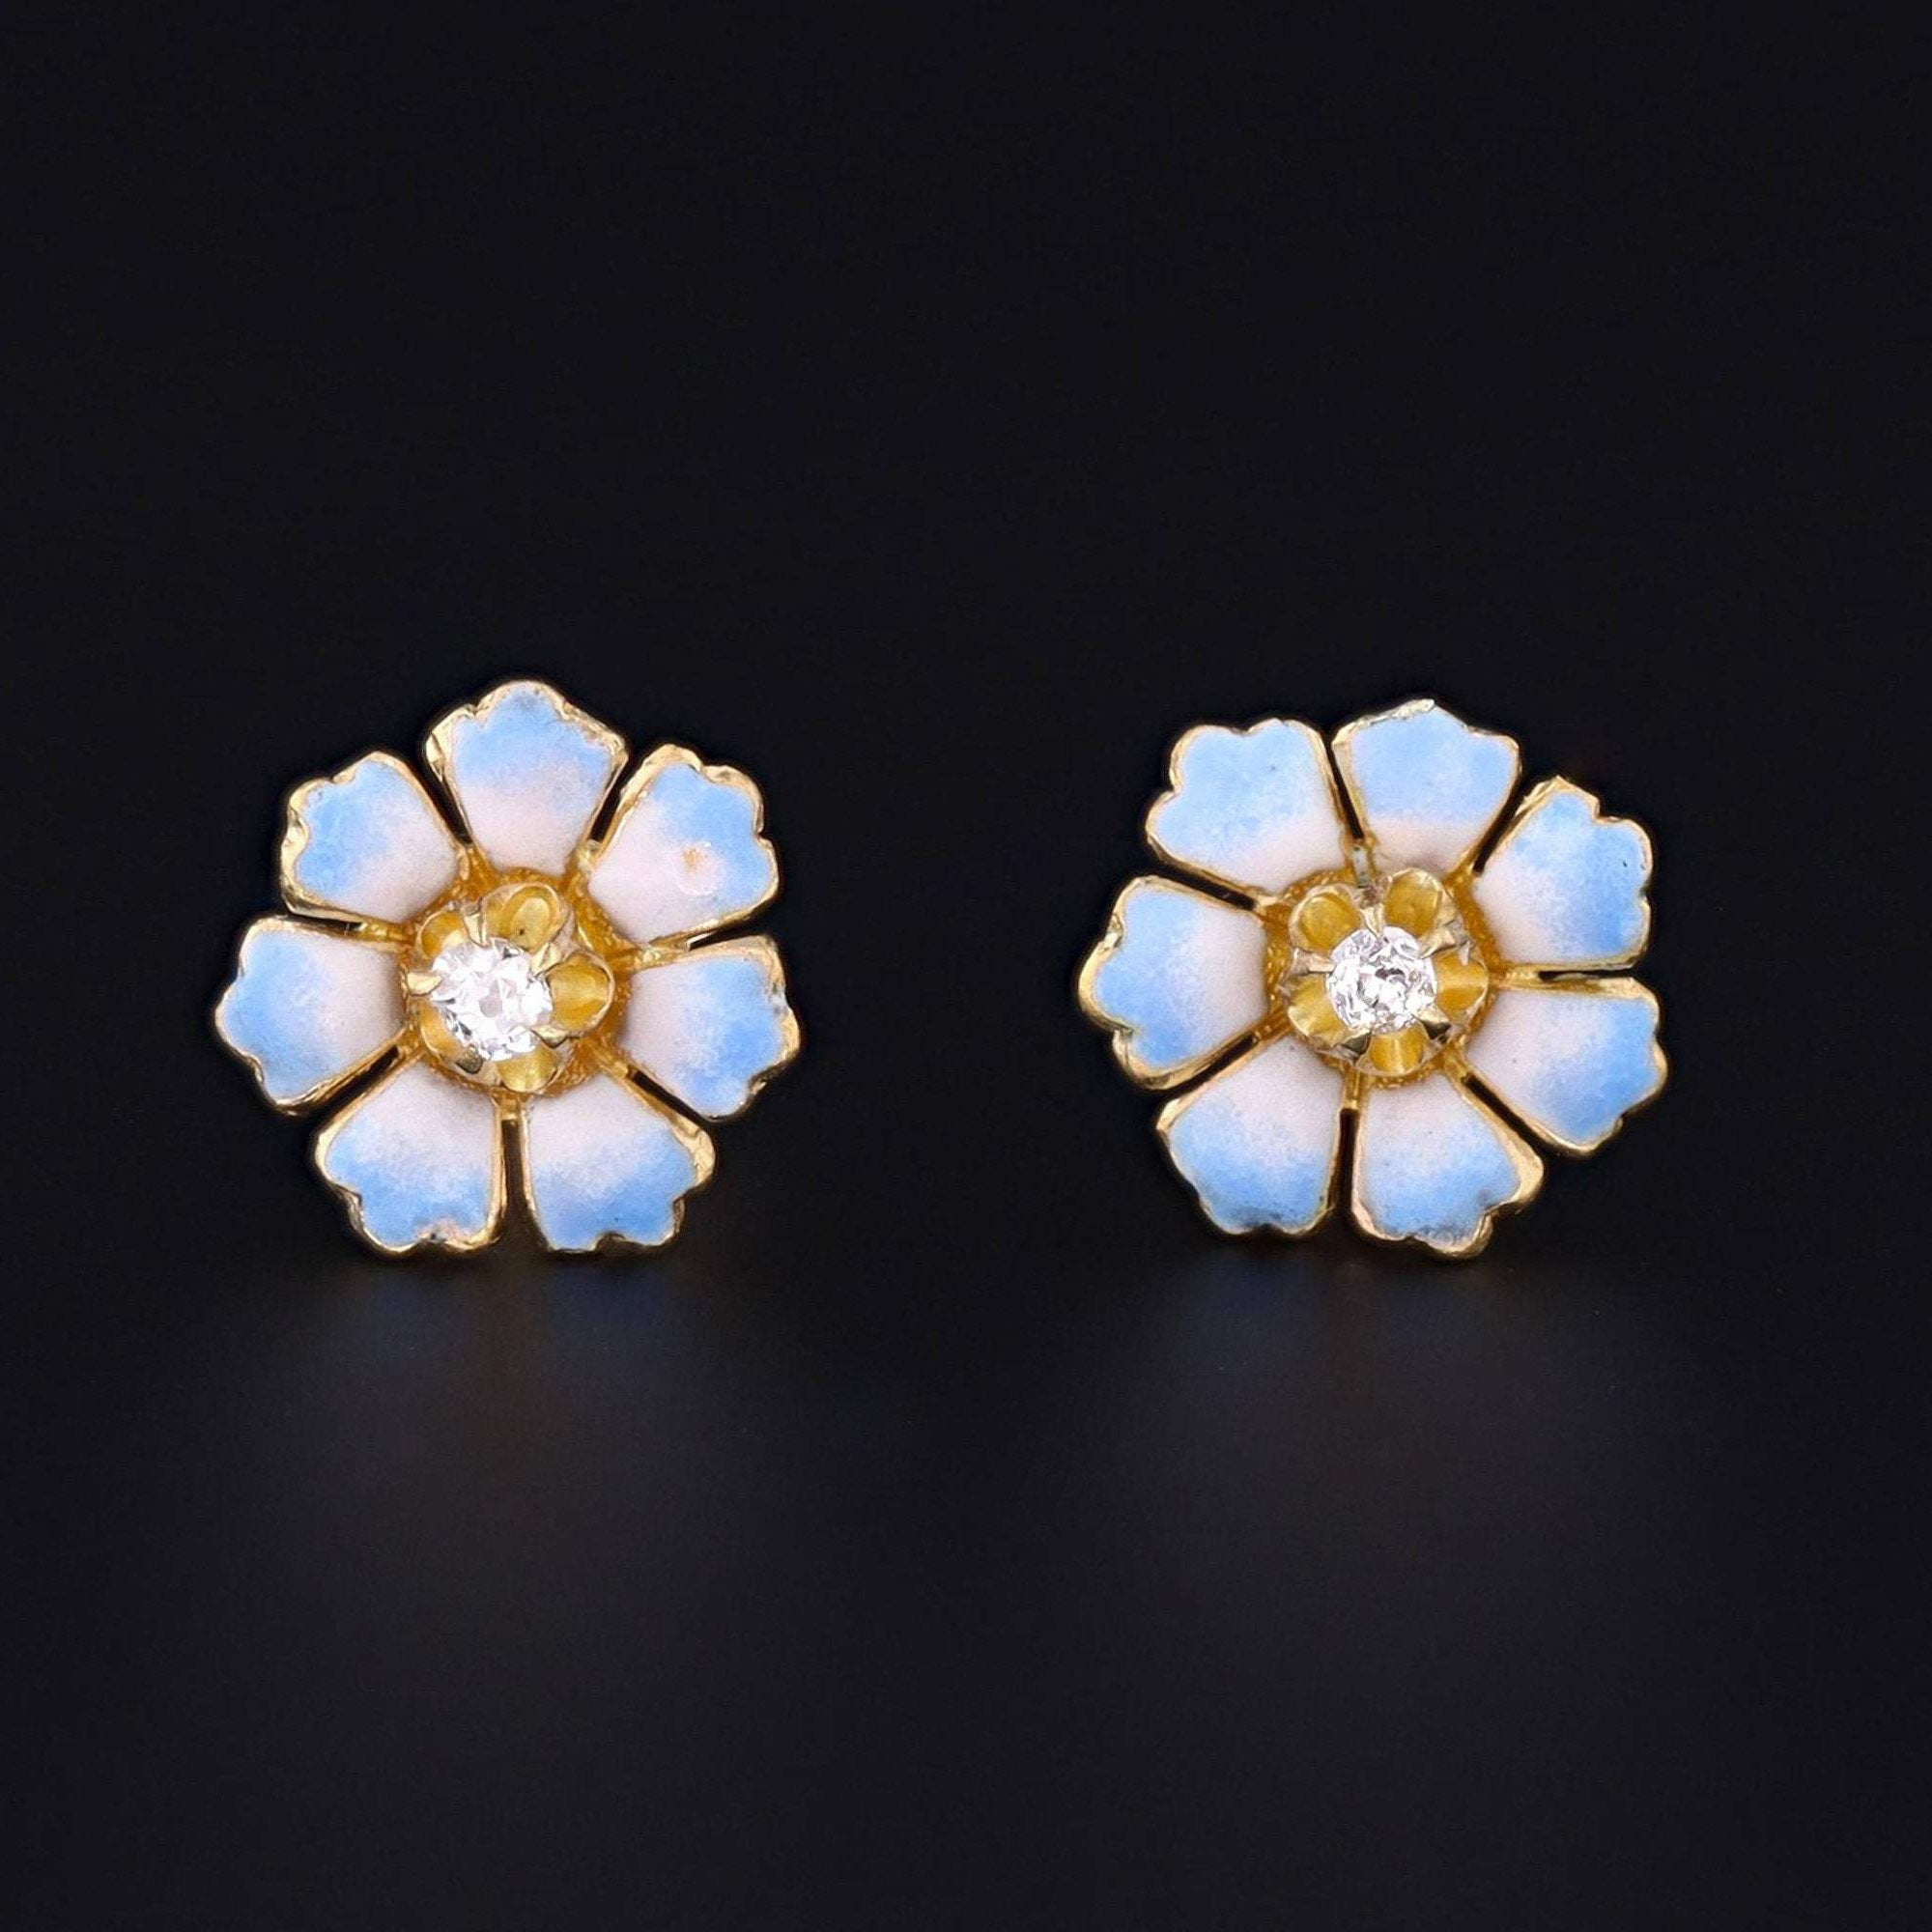 Enamel Flower Earrings | 14k Gold Earrings | Diamond Flower Earrings